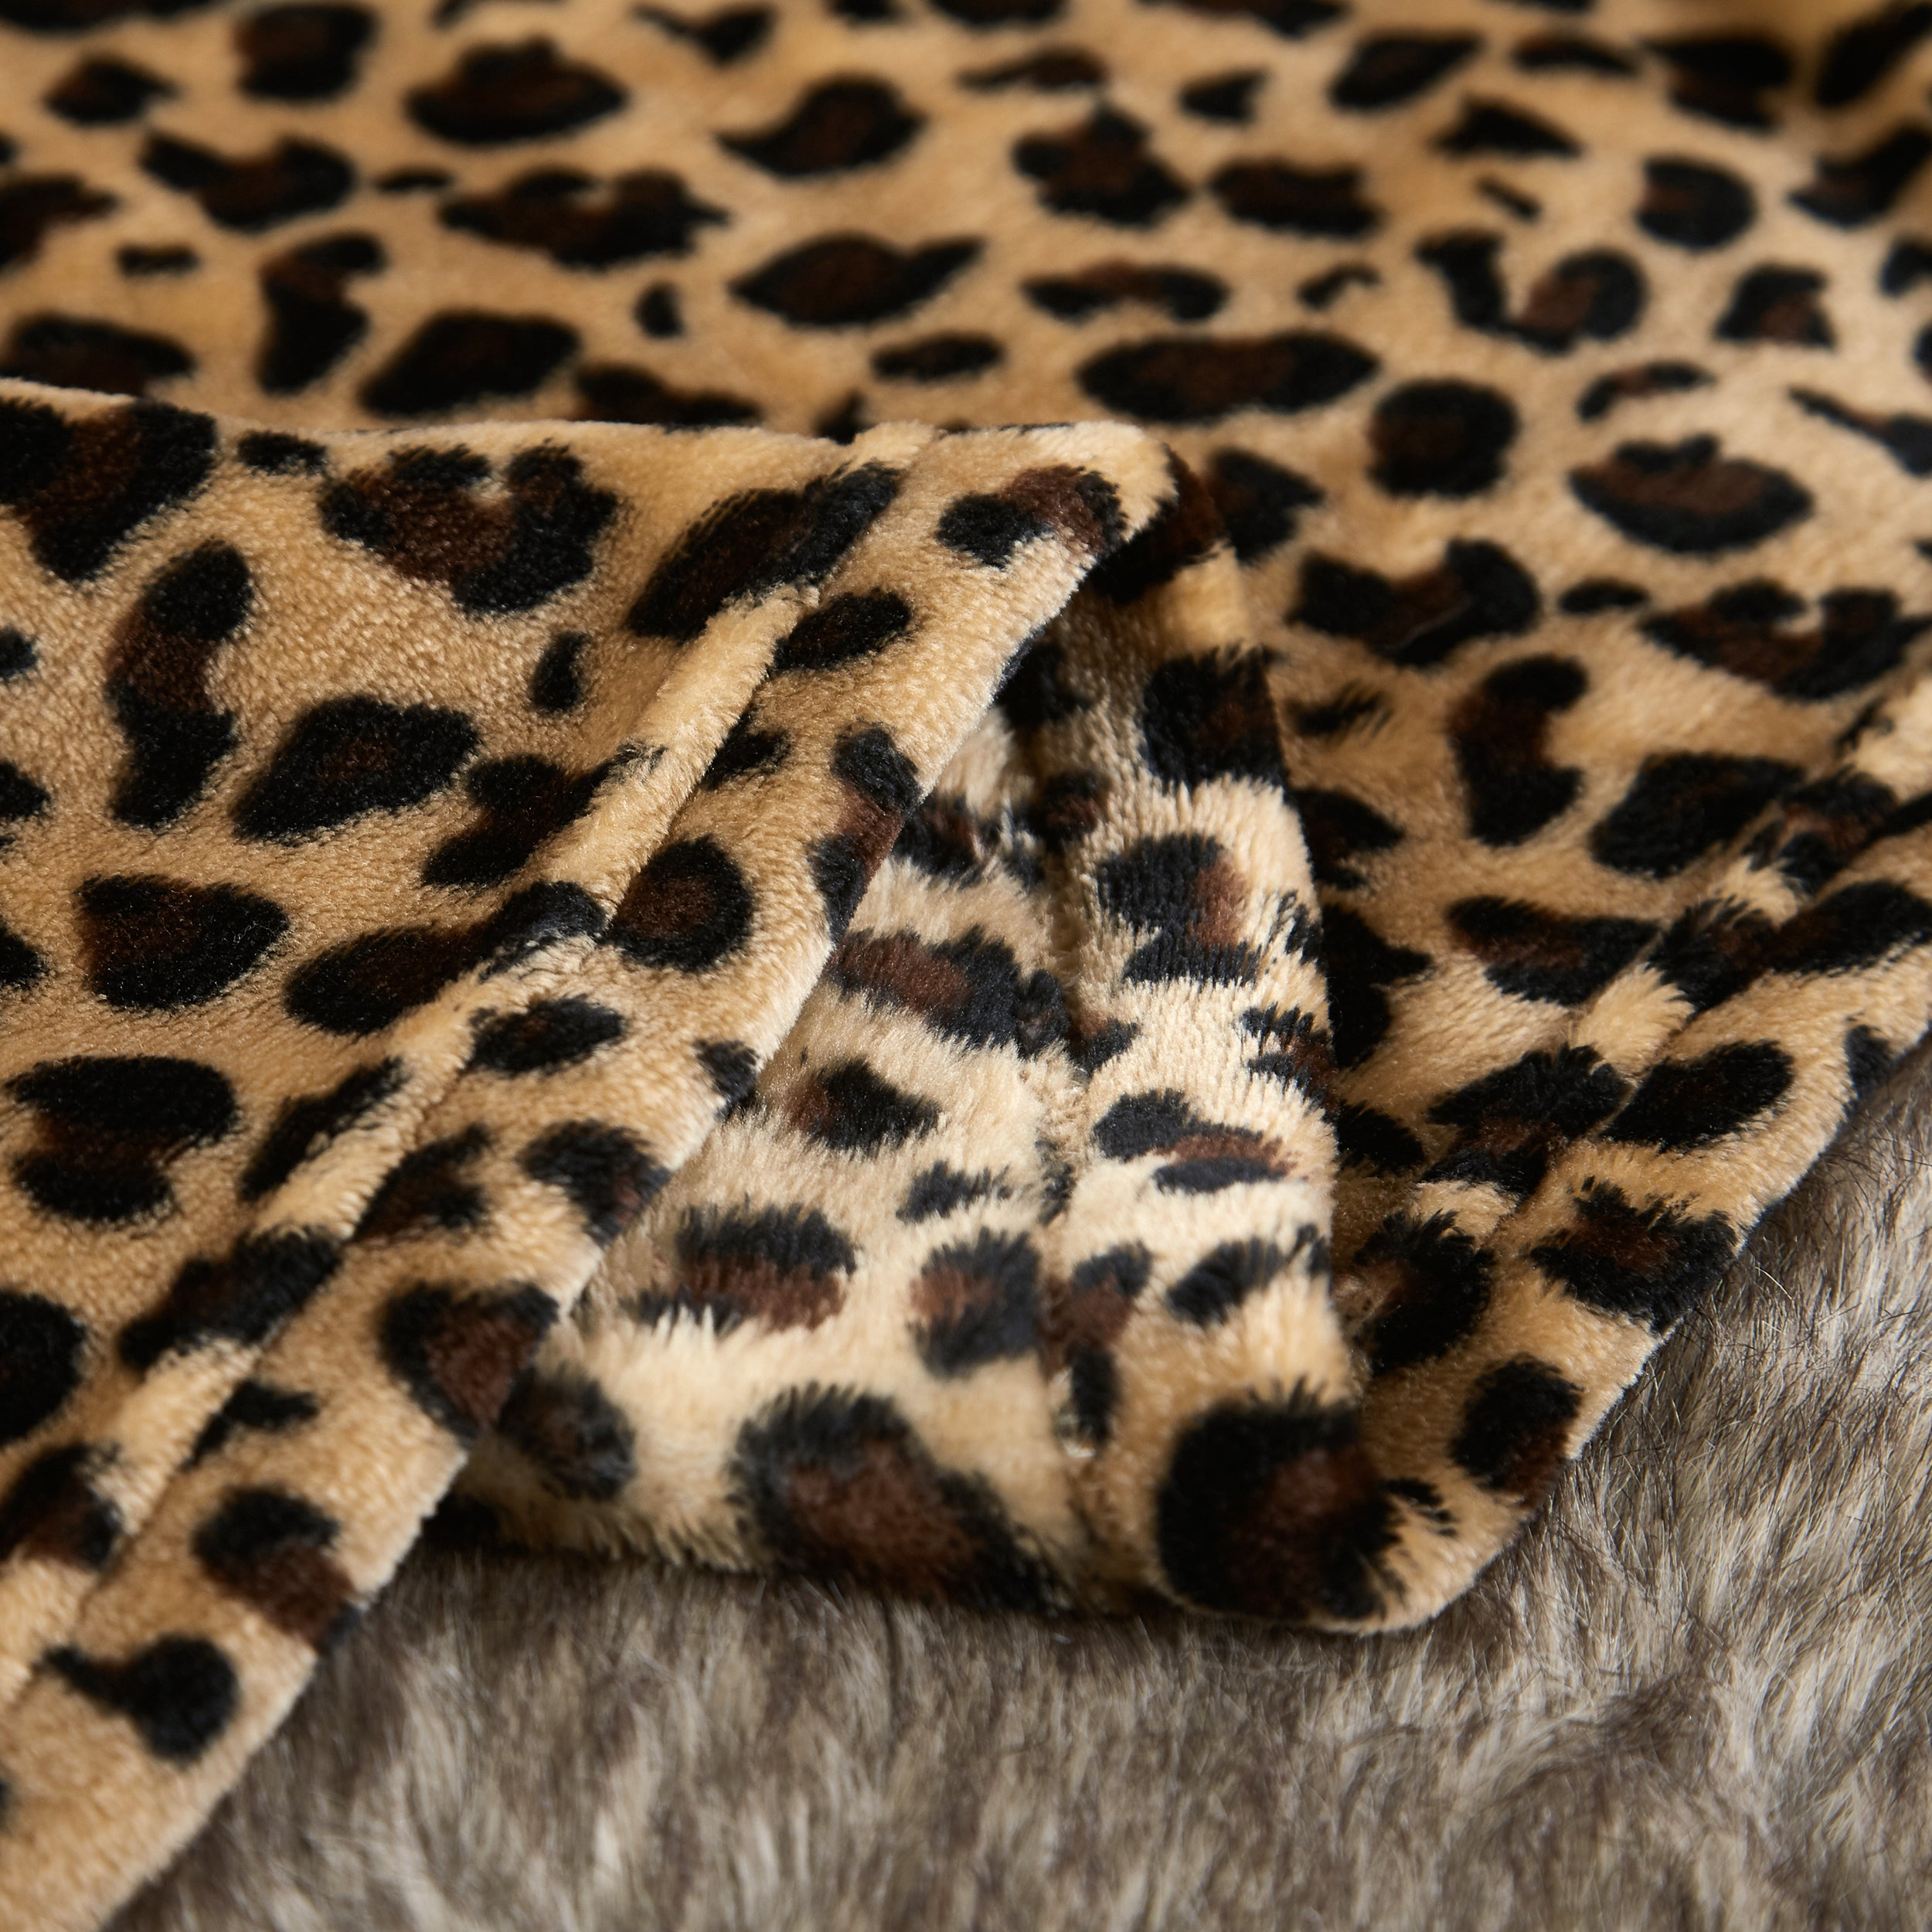 Cheetah Leopard Throw Blanket Plaid Ultra-Plush Soft Colorful Oversized Decorative Couch Travel Blanket